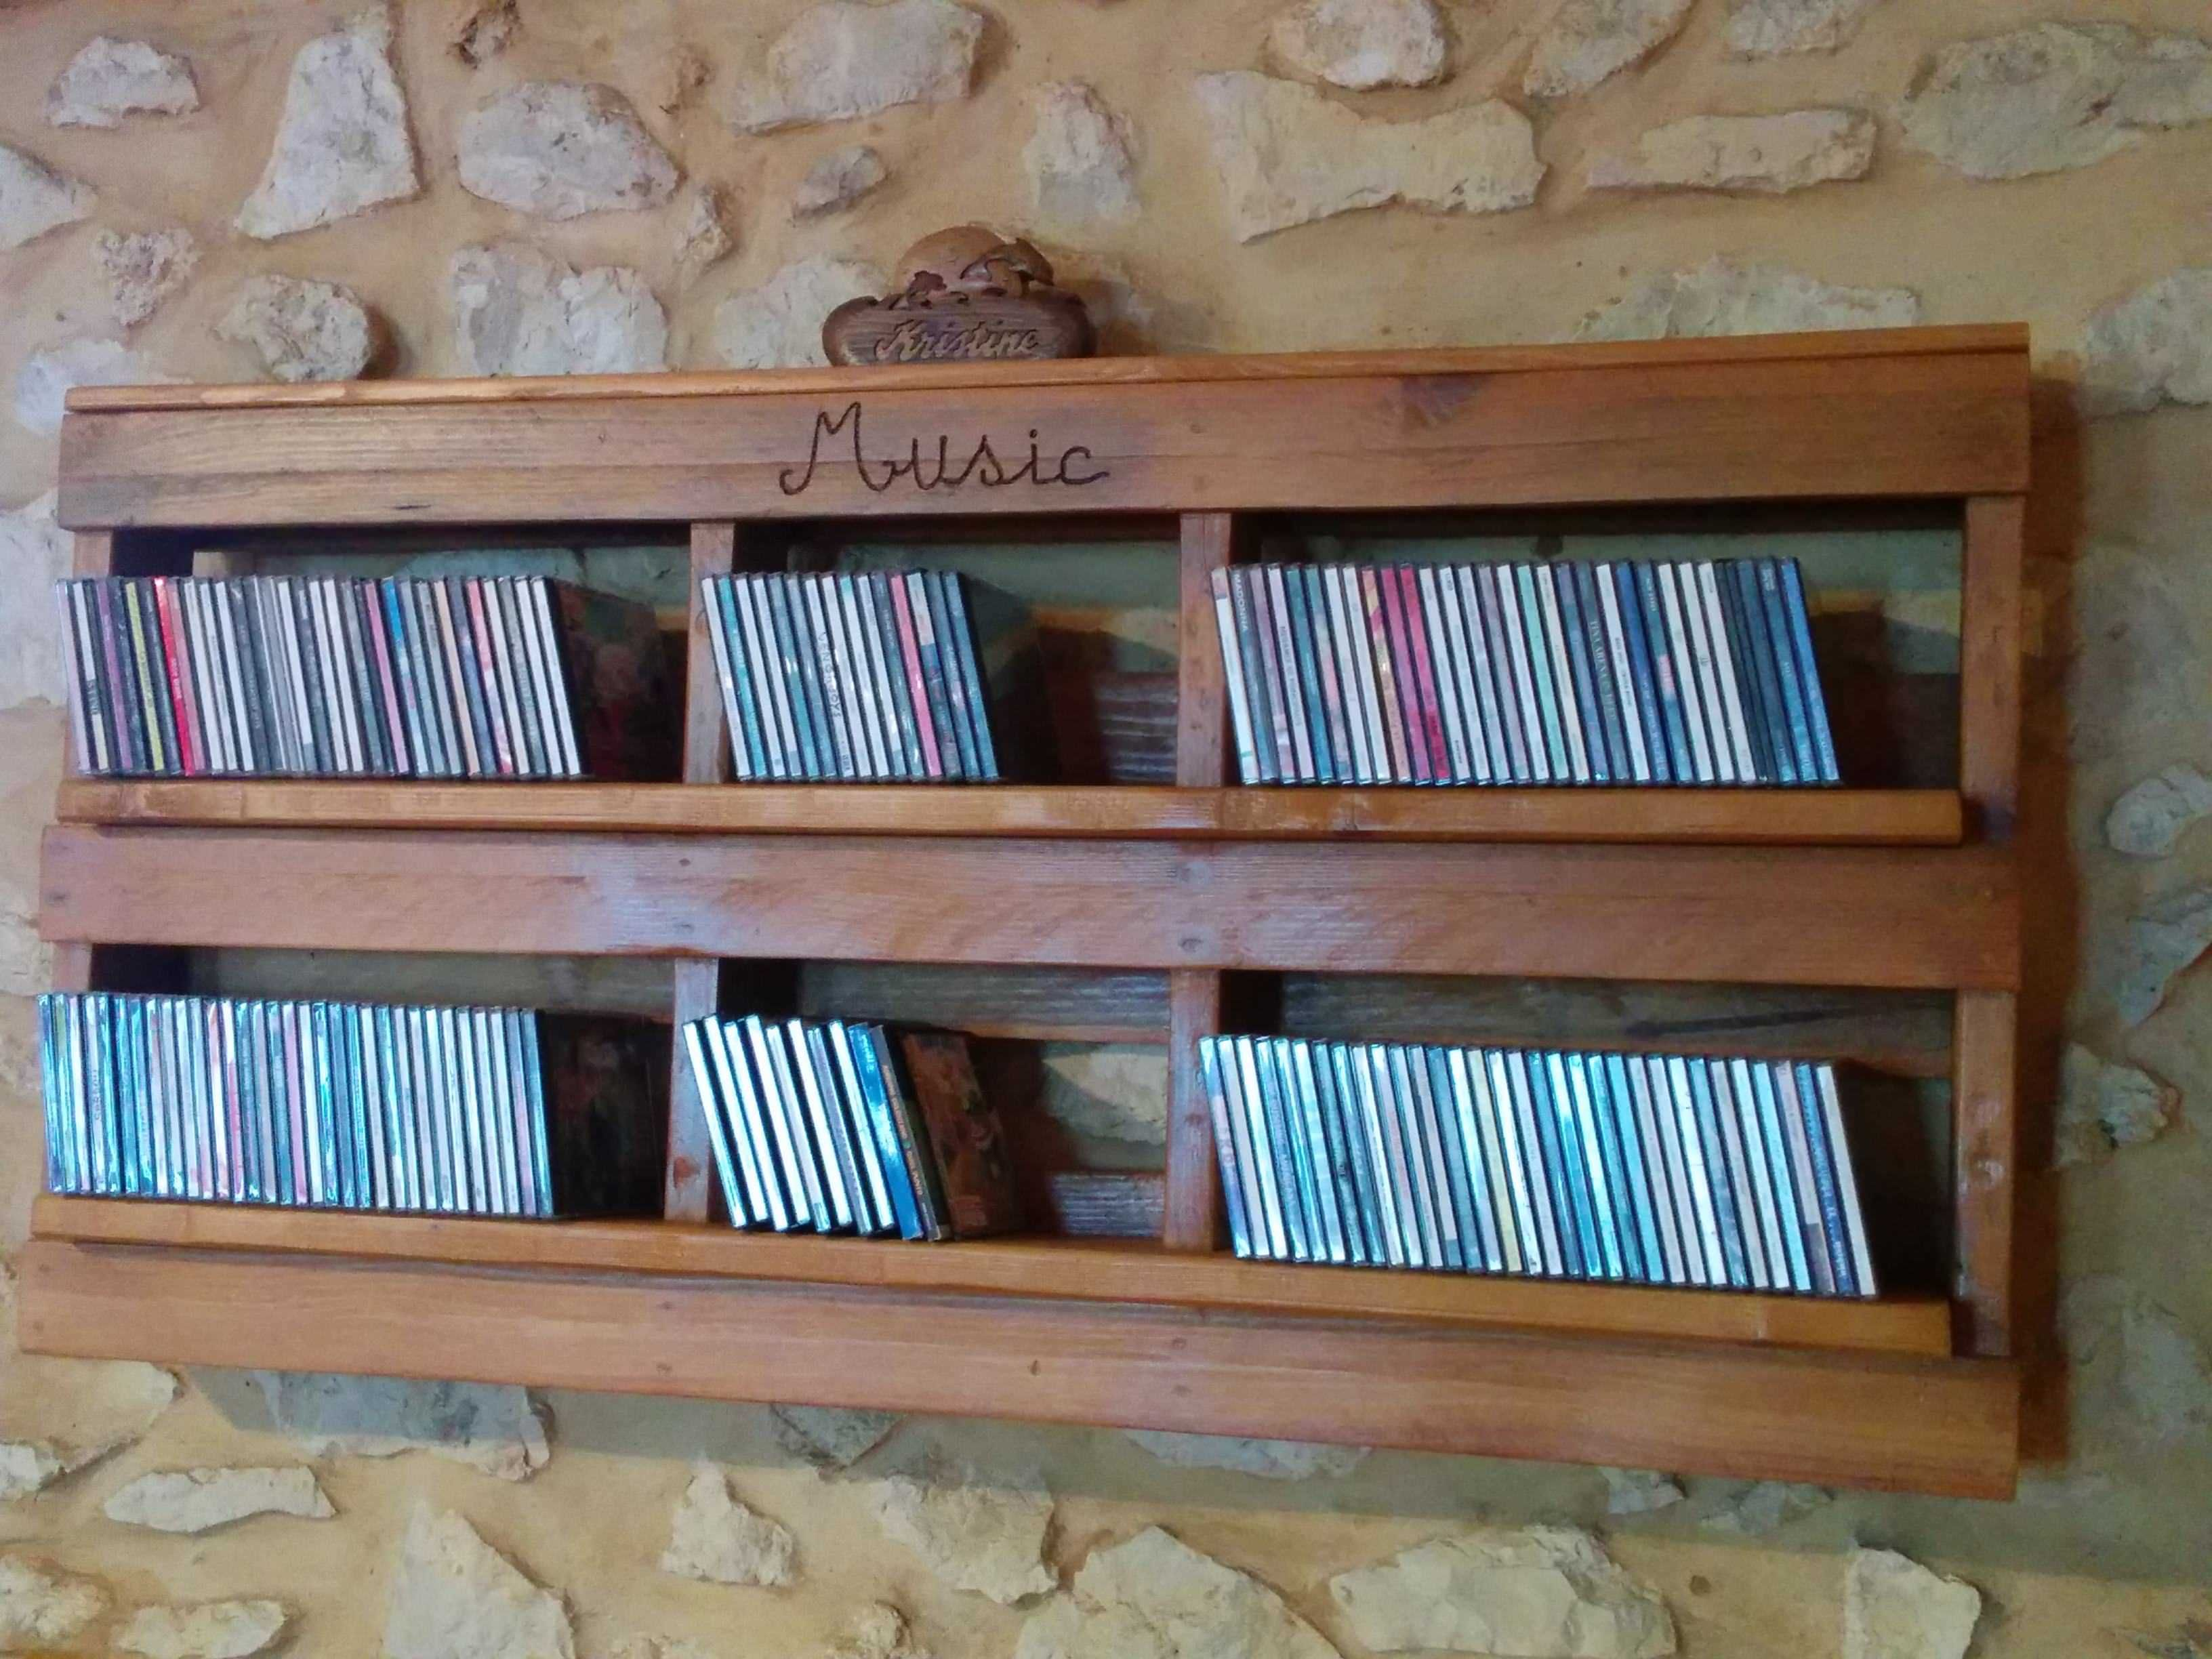 Music Cd Storage Solutions Pallet Cd Shelf • Pallet Ideas  Pallets Shelves And Storage